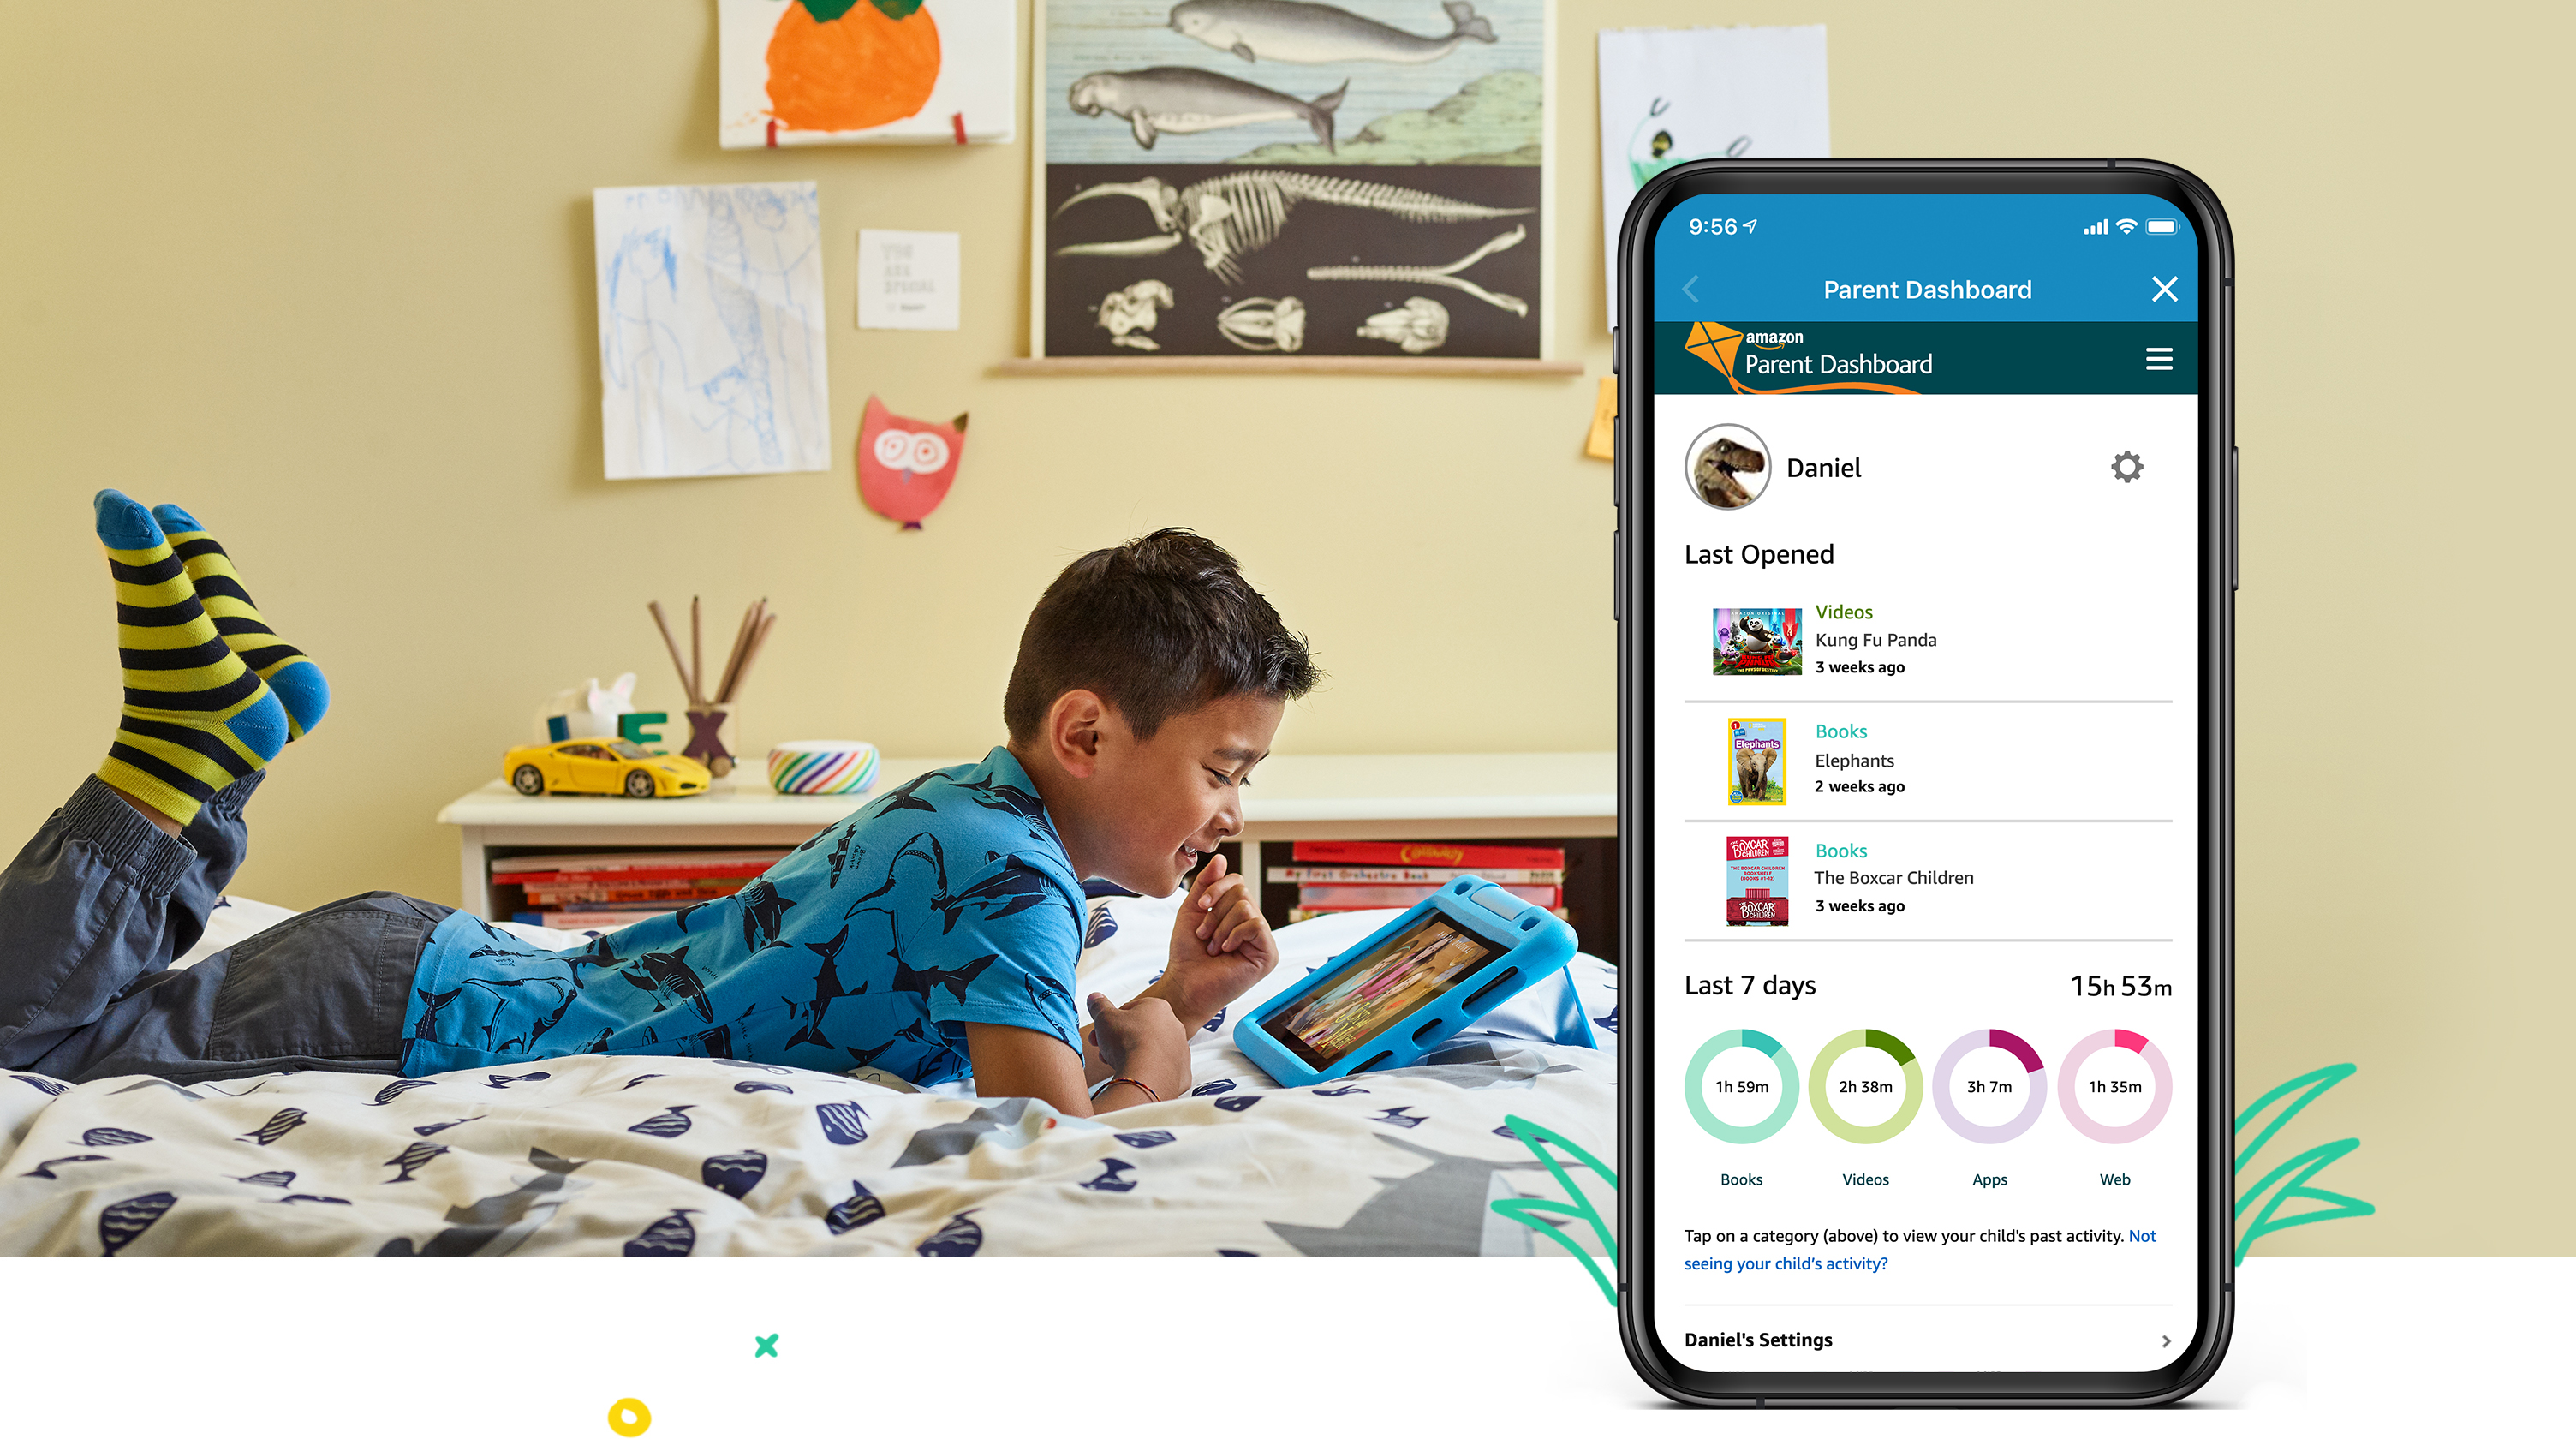 Easy-to-use parental controls